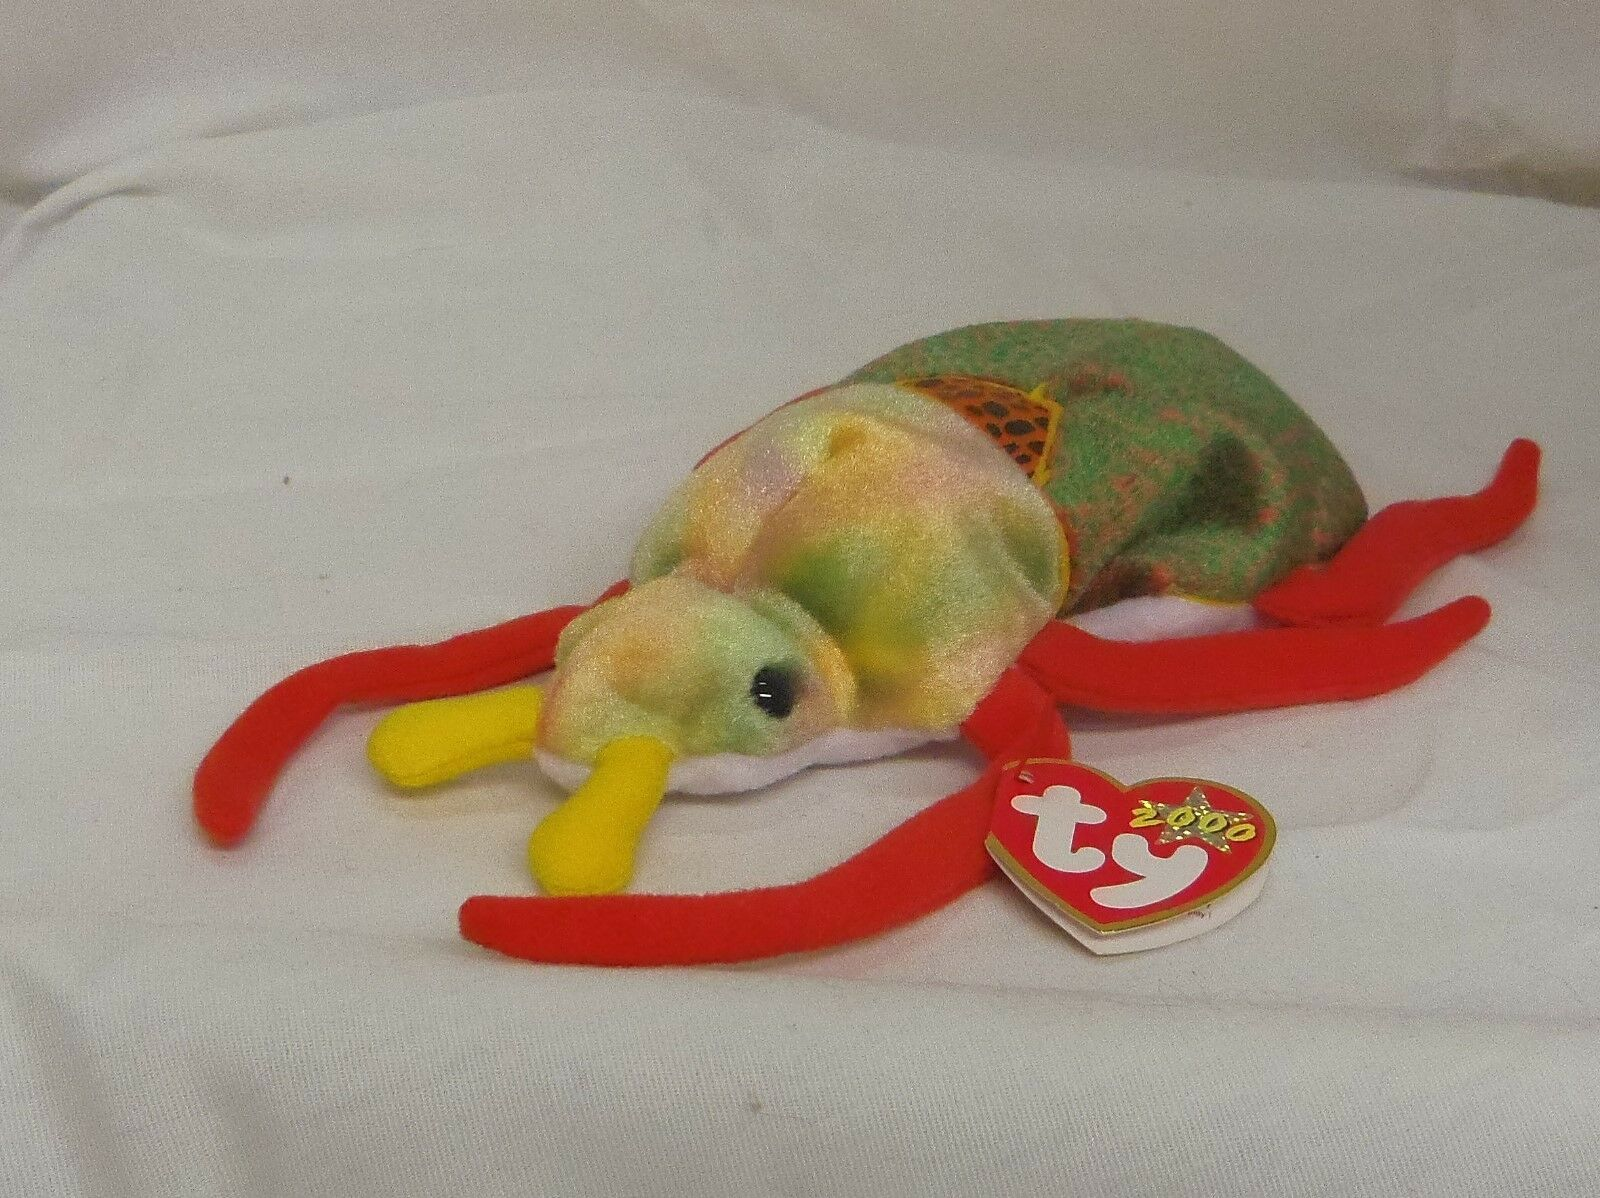 89a0d823a66 UPC 008421042814 product image for Ty Beanie Babies Scurry The Beetle  Birthday 1 18  ...